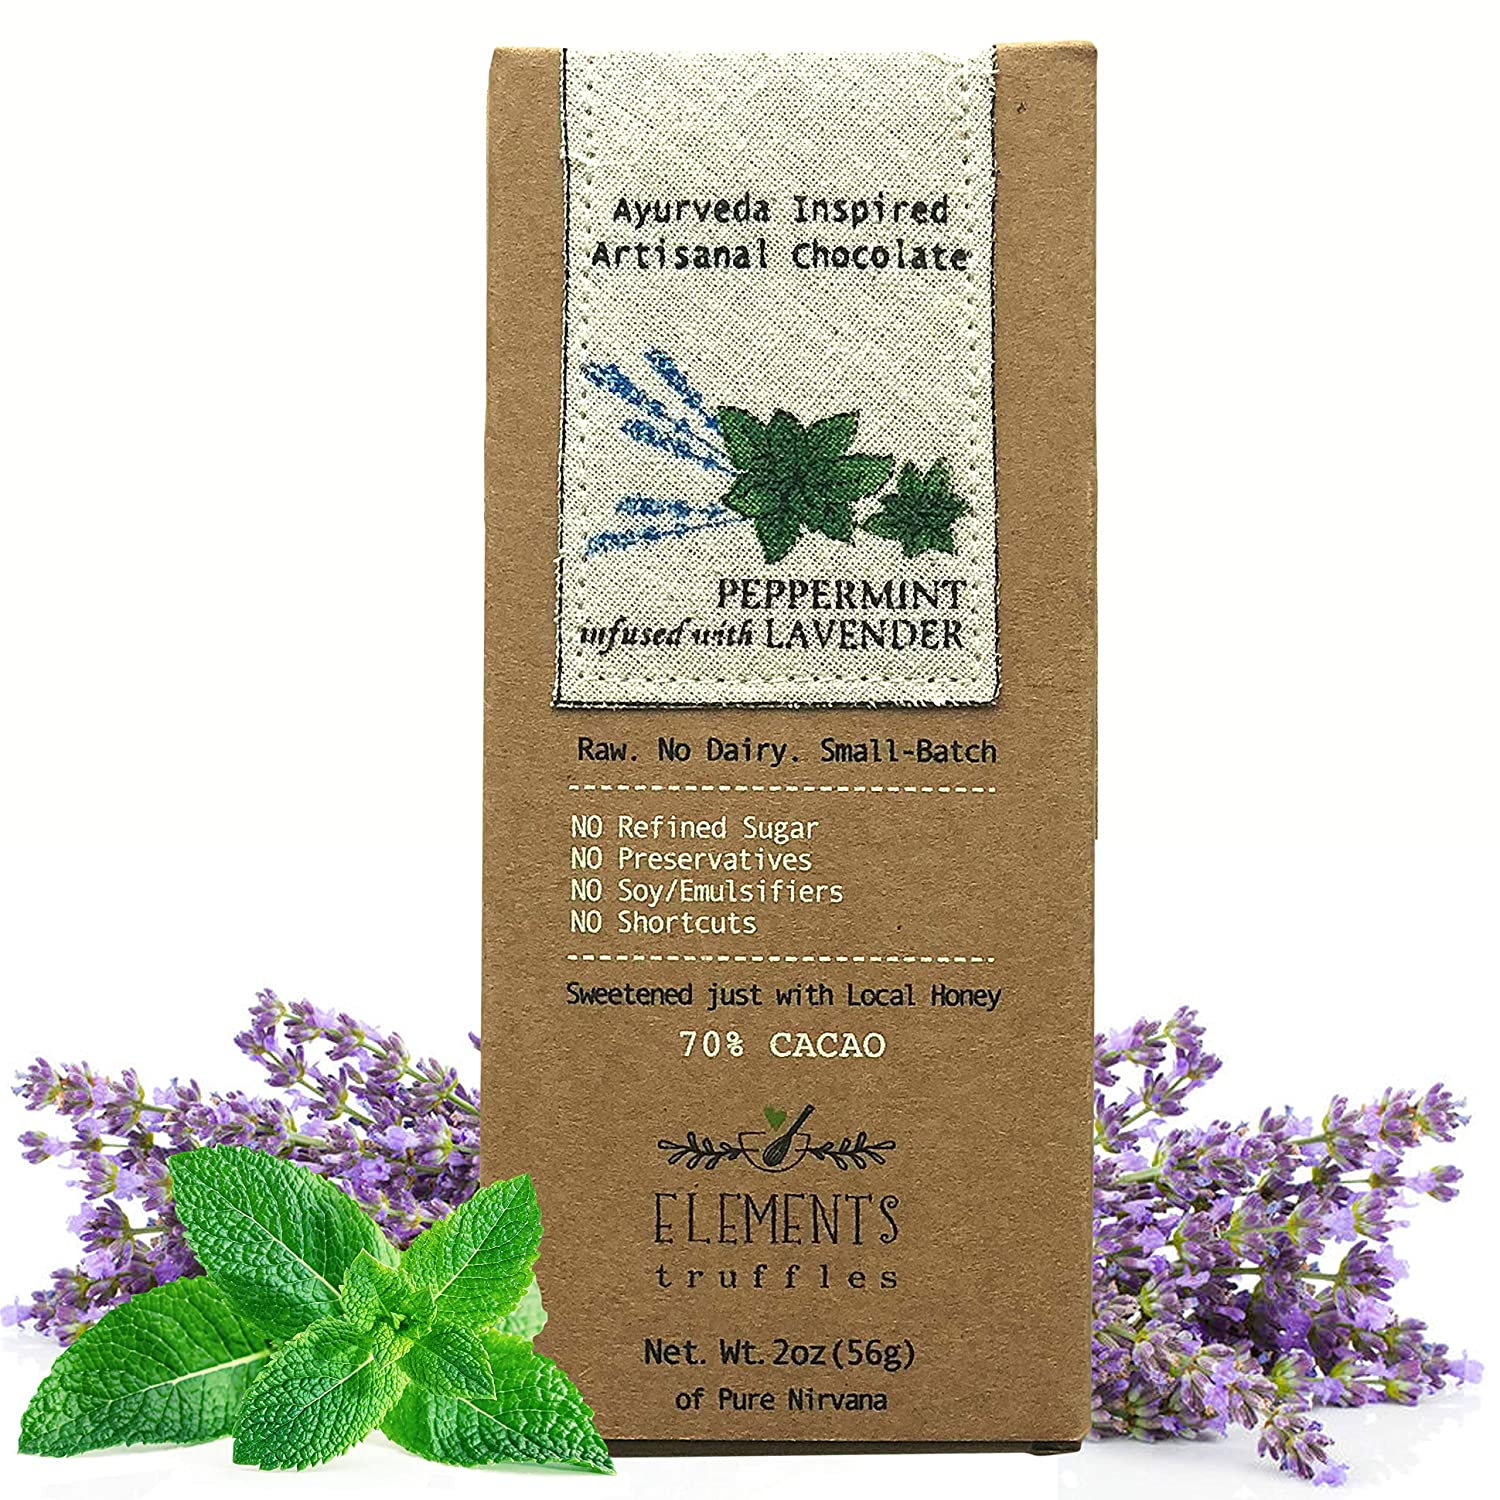 Elements Truffles Peppermint Bar with Lavender Infusion - Dairy Free Chocolate Bar - Paleo, Gluten Free, Non-GMO, Raw & Organic Chocolate Bar - ...